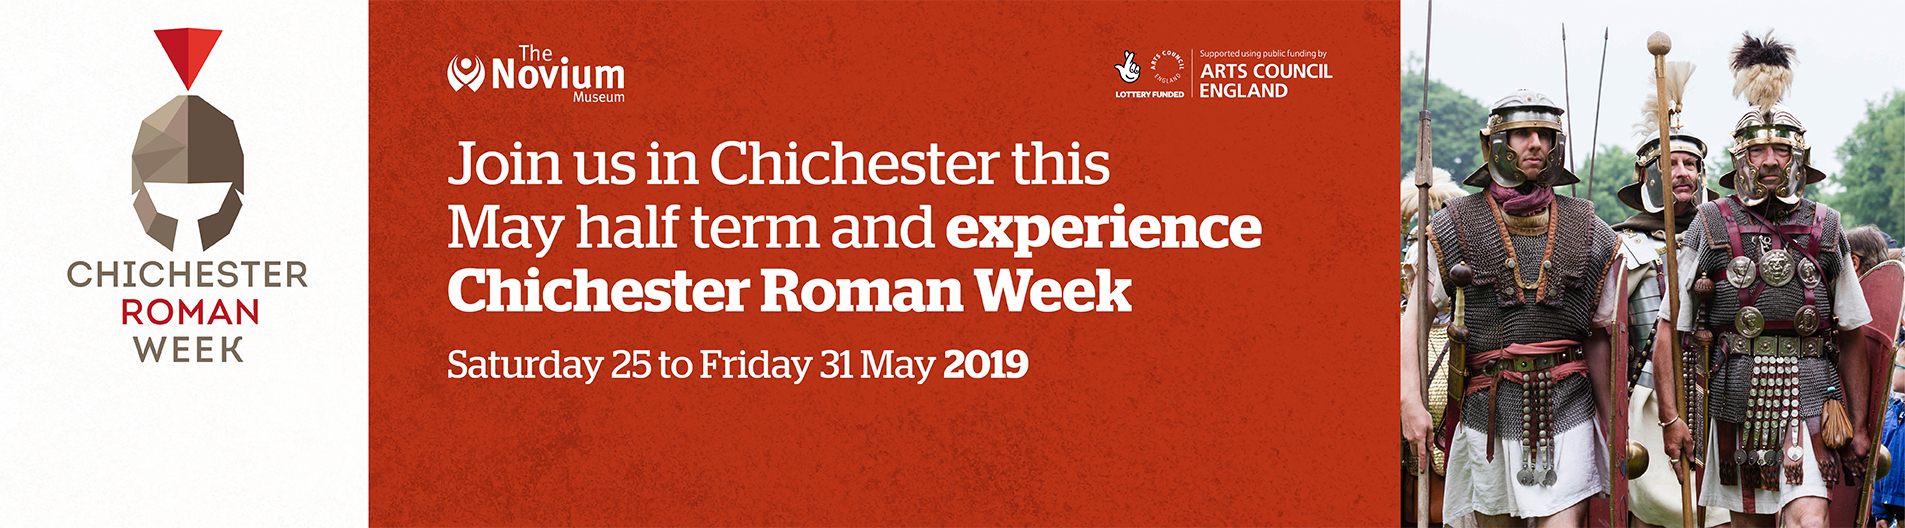 Chichester Roman Week 2019